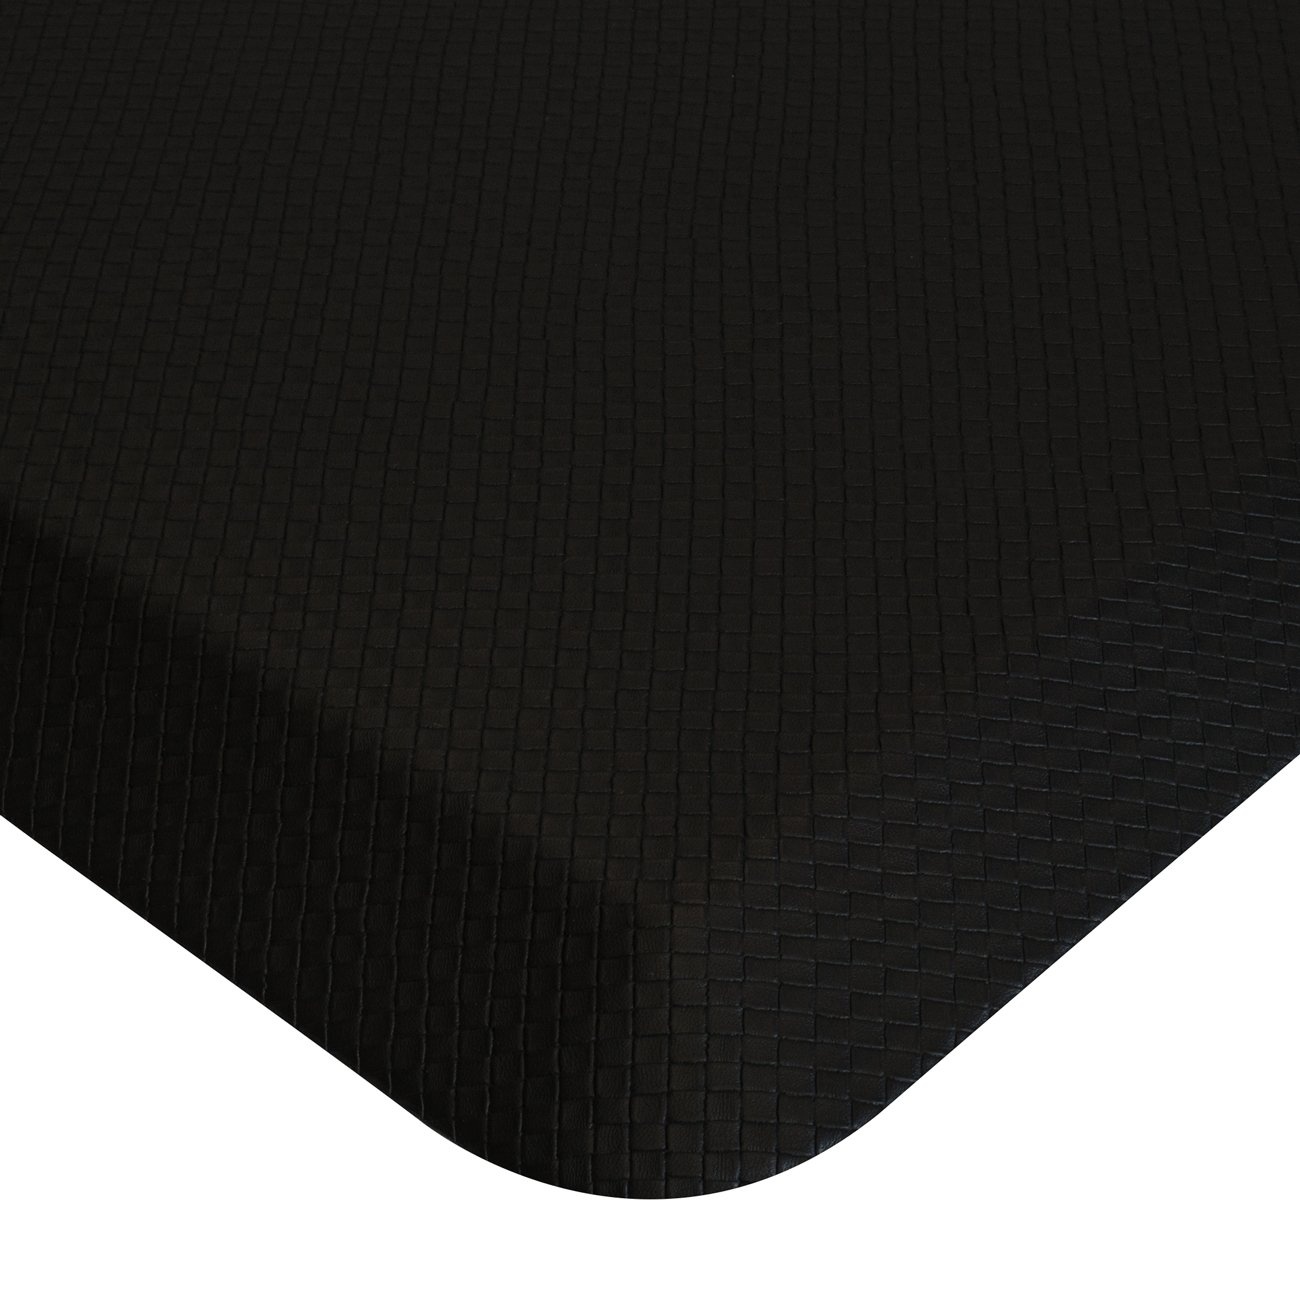 Sorbus Anti Fatigue Mat - Comfort Standing Mat Kitchen Rug - Perfect for Kitchen and Standing Office Desk (24 in x 18 in, Black) by Sorbus (Image #6)